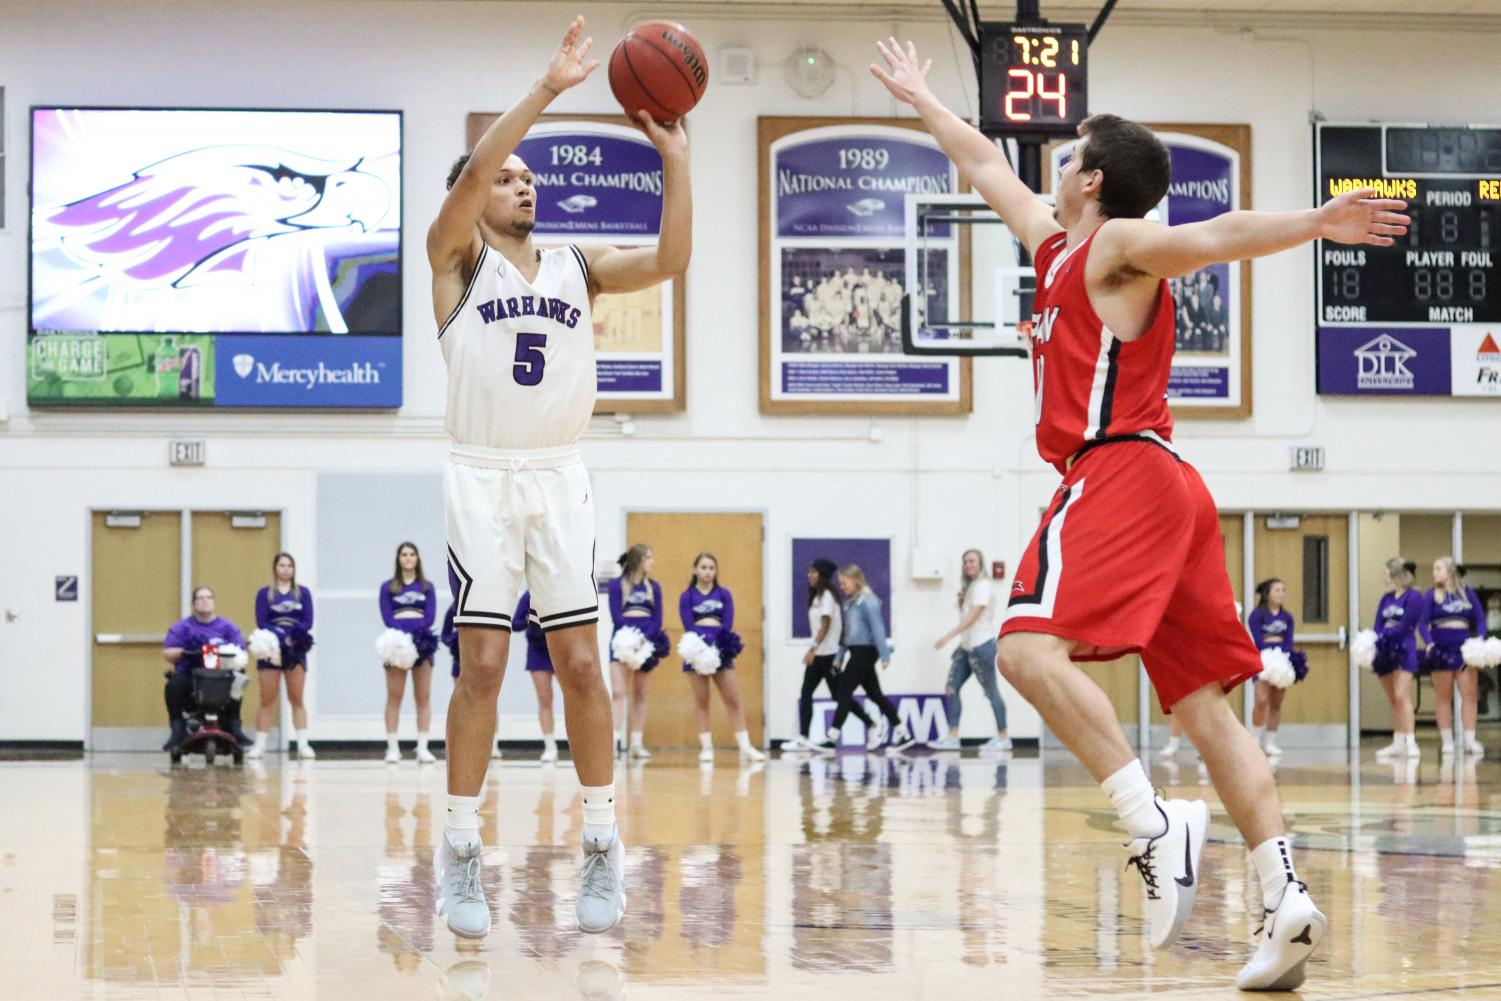 Sophomore Kale Bailey shoots from outside against Ripon College. Bailey finished with 8 points and 8 assists.